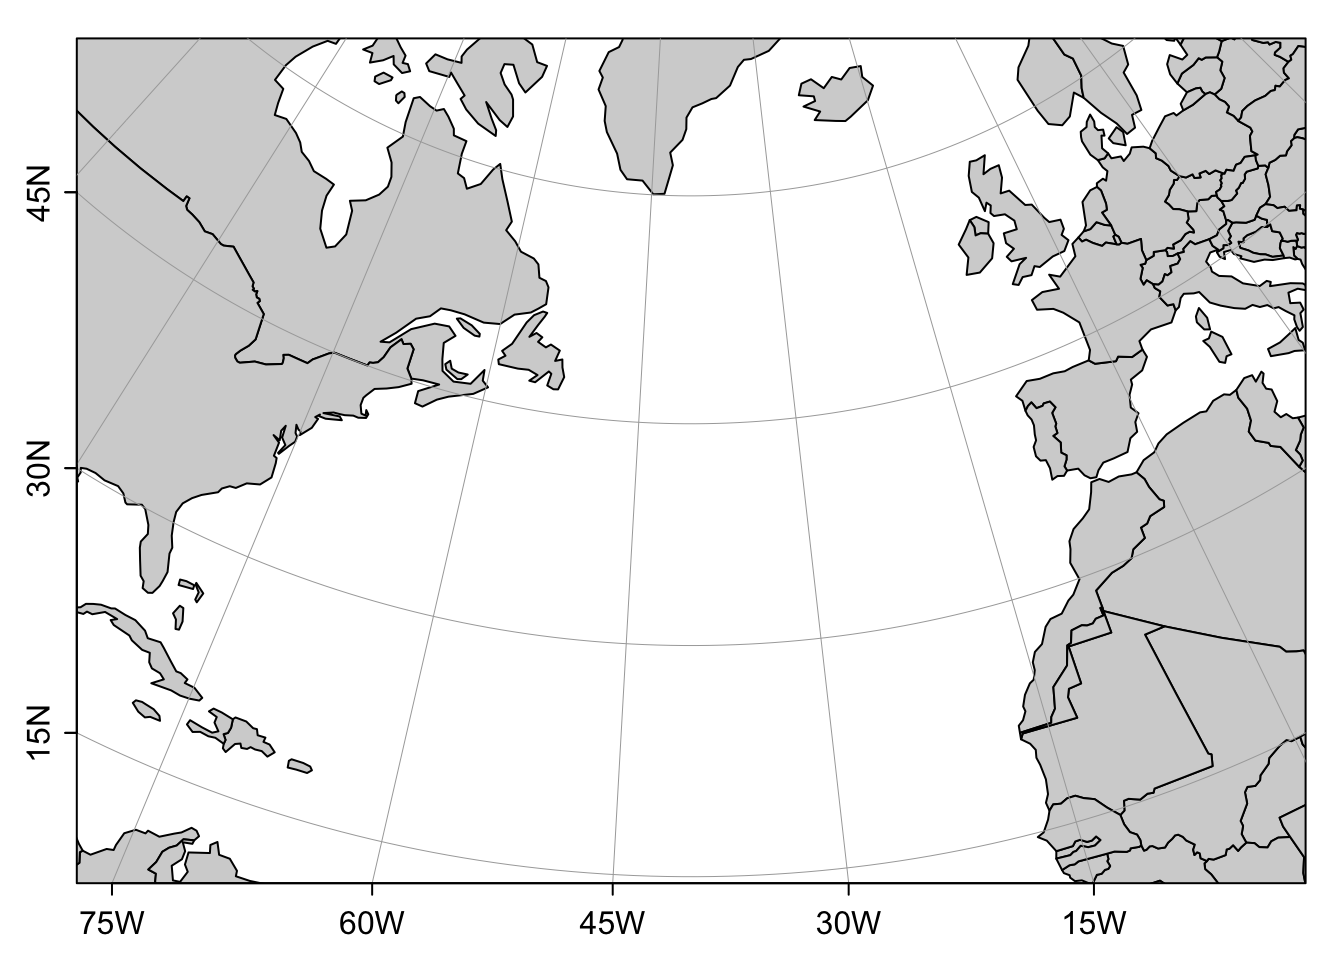 Map of the North-Atlantic based on the Lambert Conformal Conic projection.